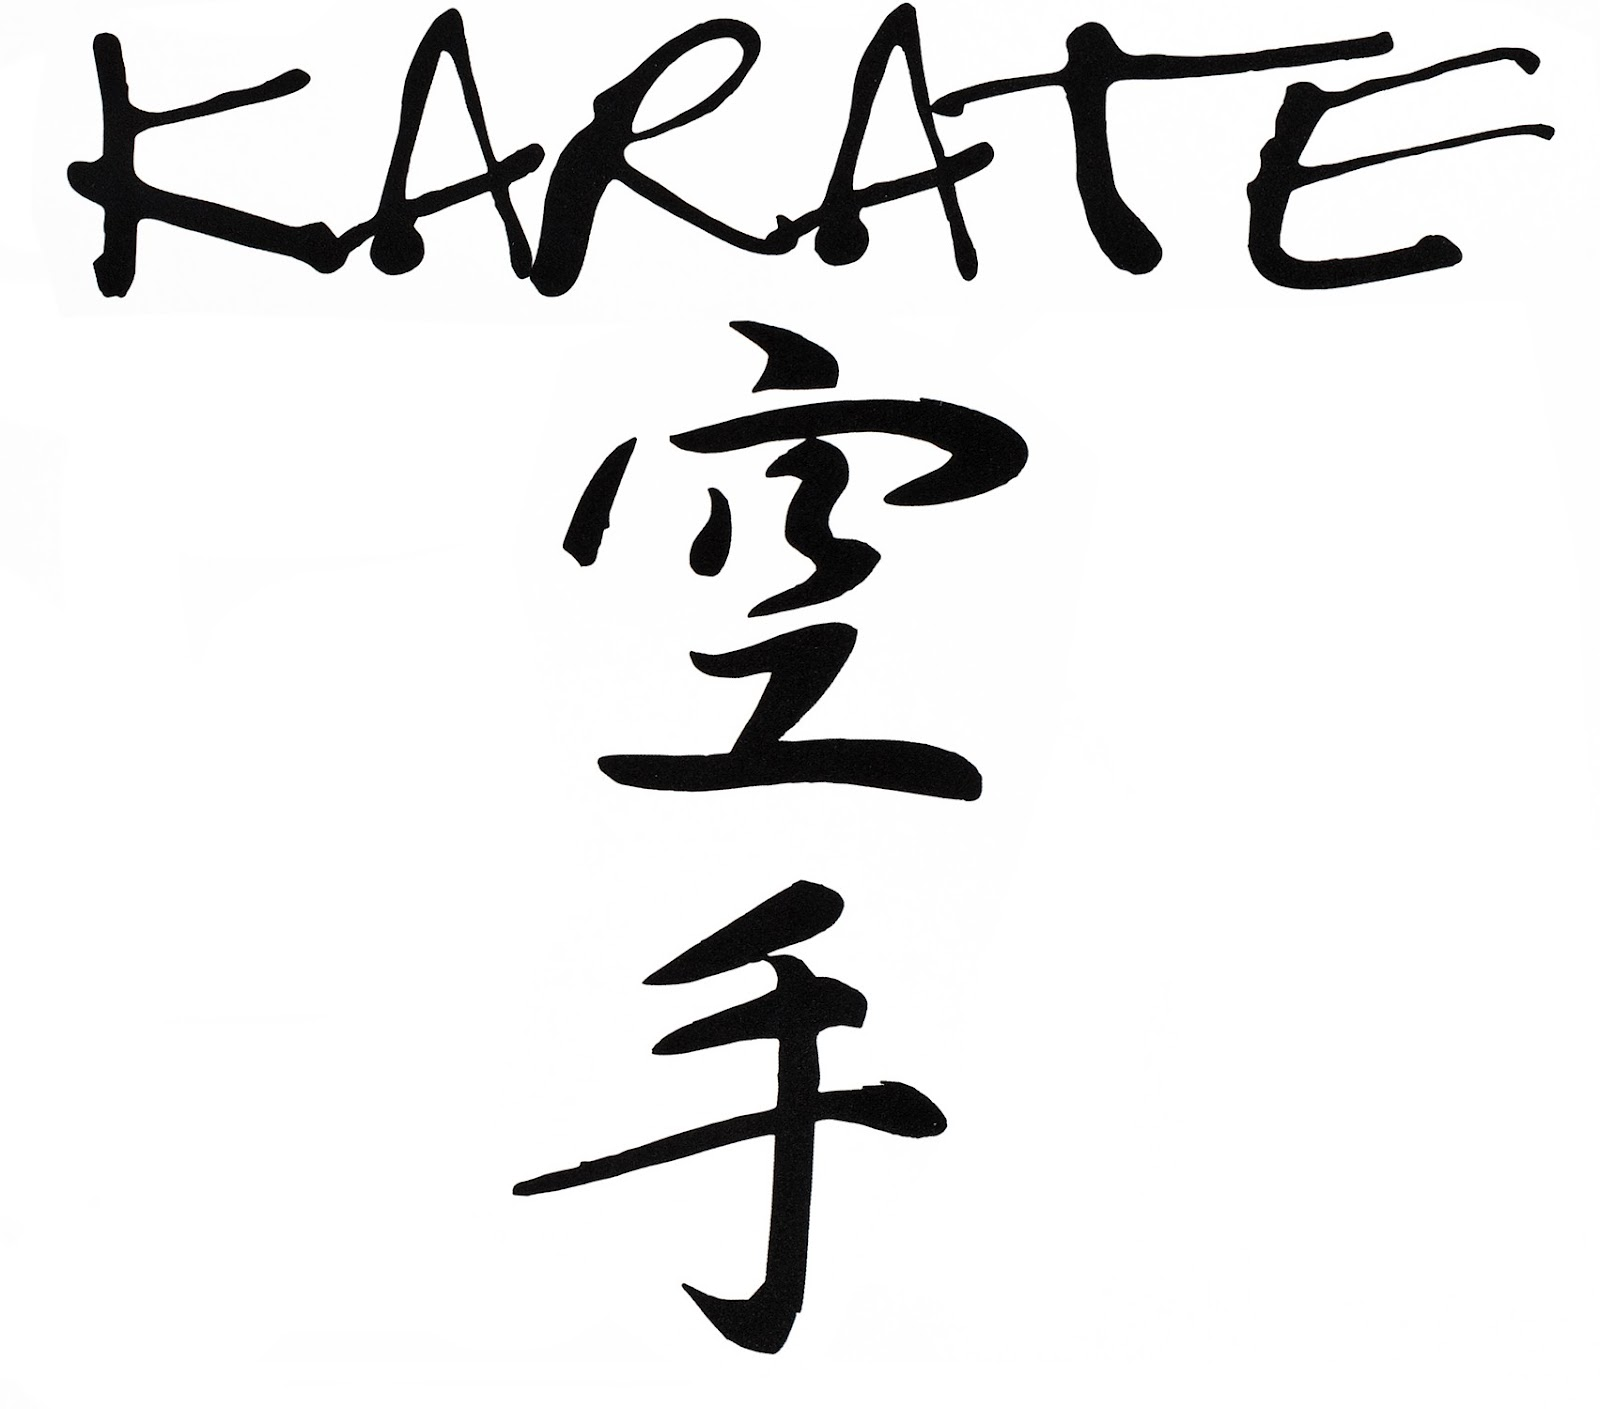 Free Karate Download Free Clip Art Free Clip Art On